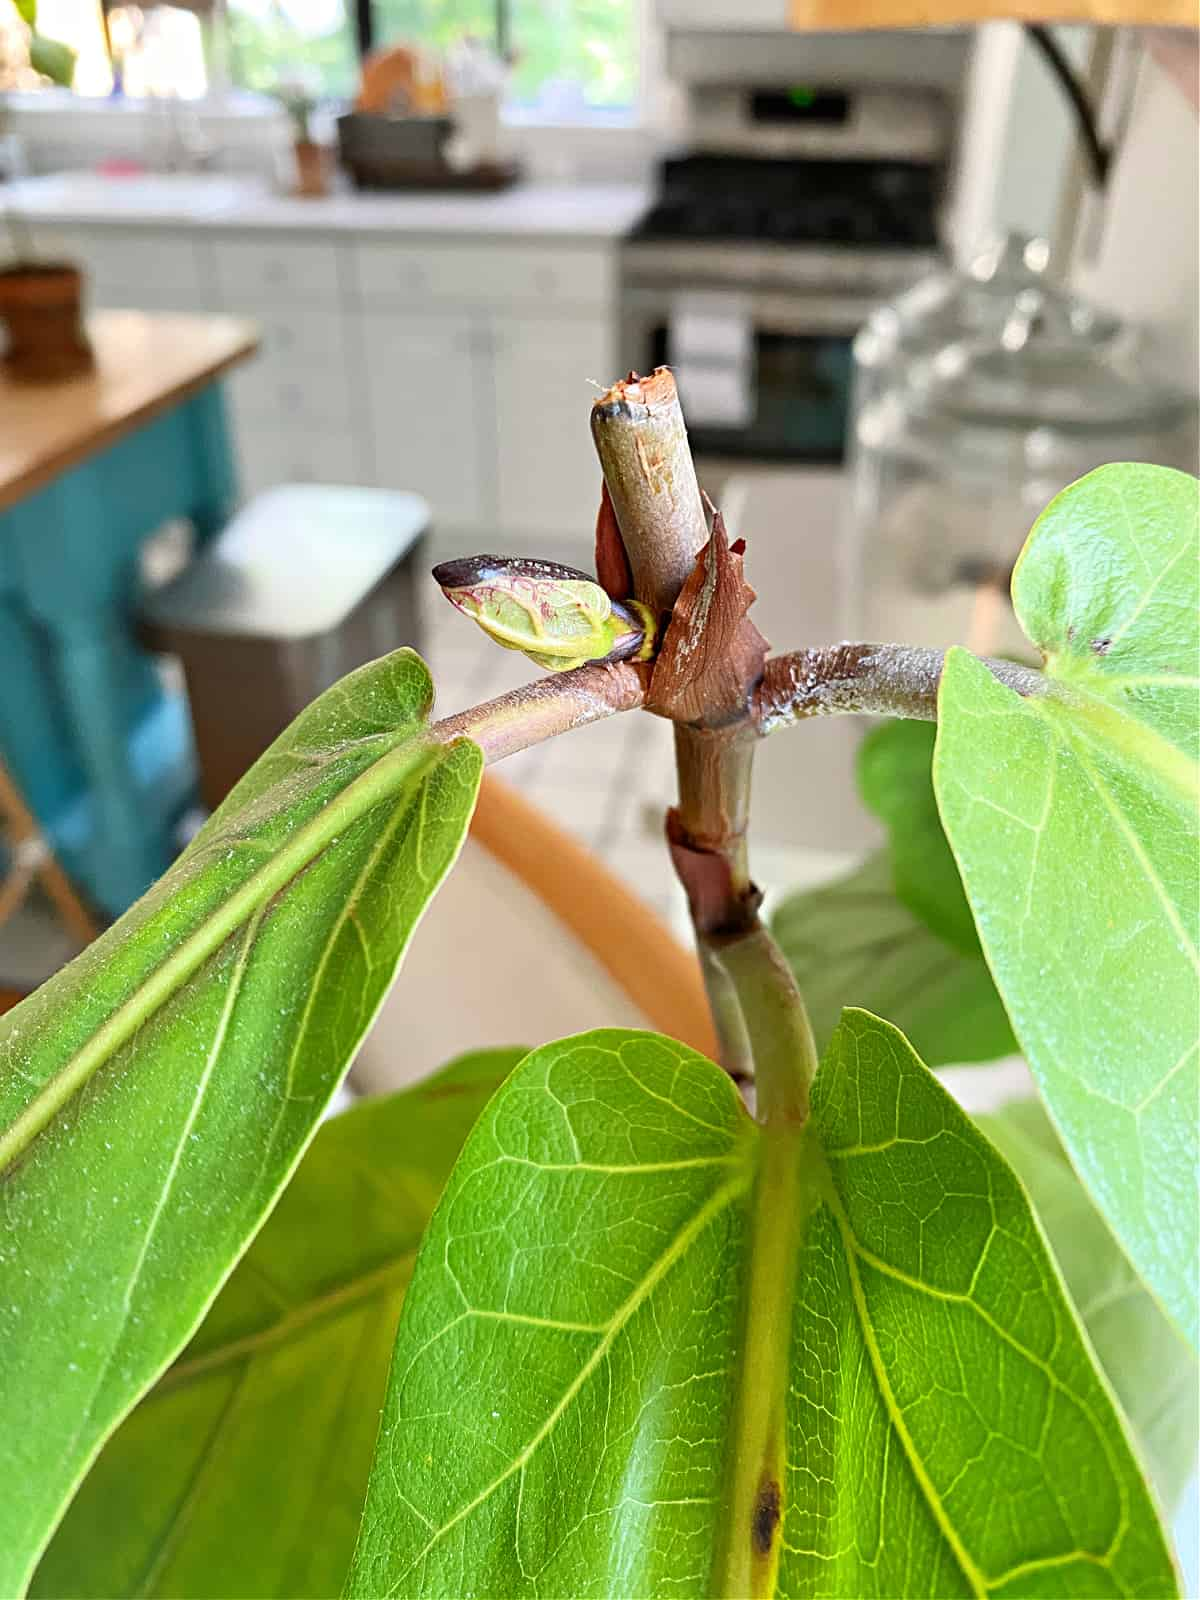 new branch growing on fiddle leaf fig